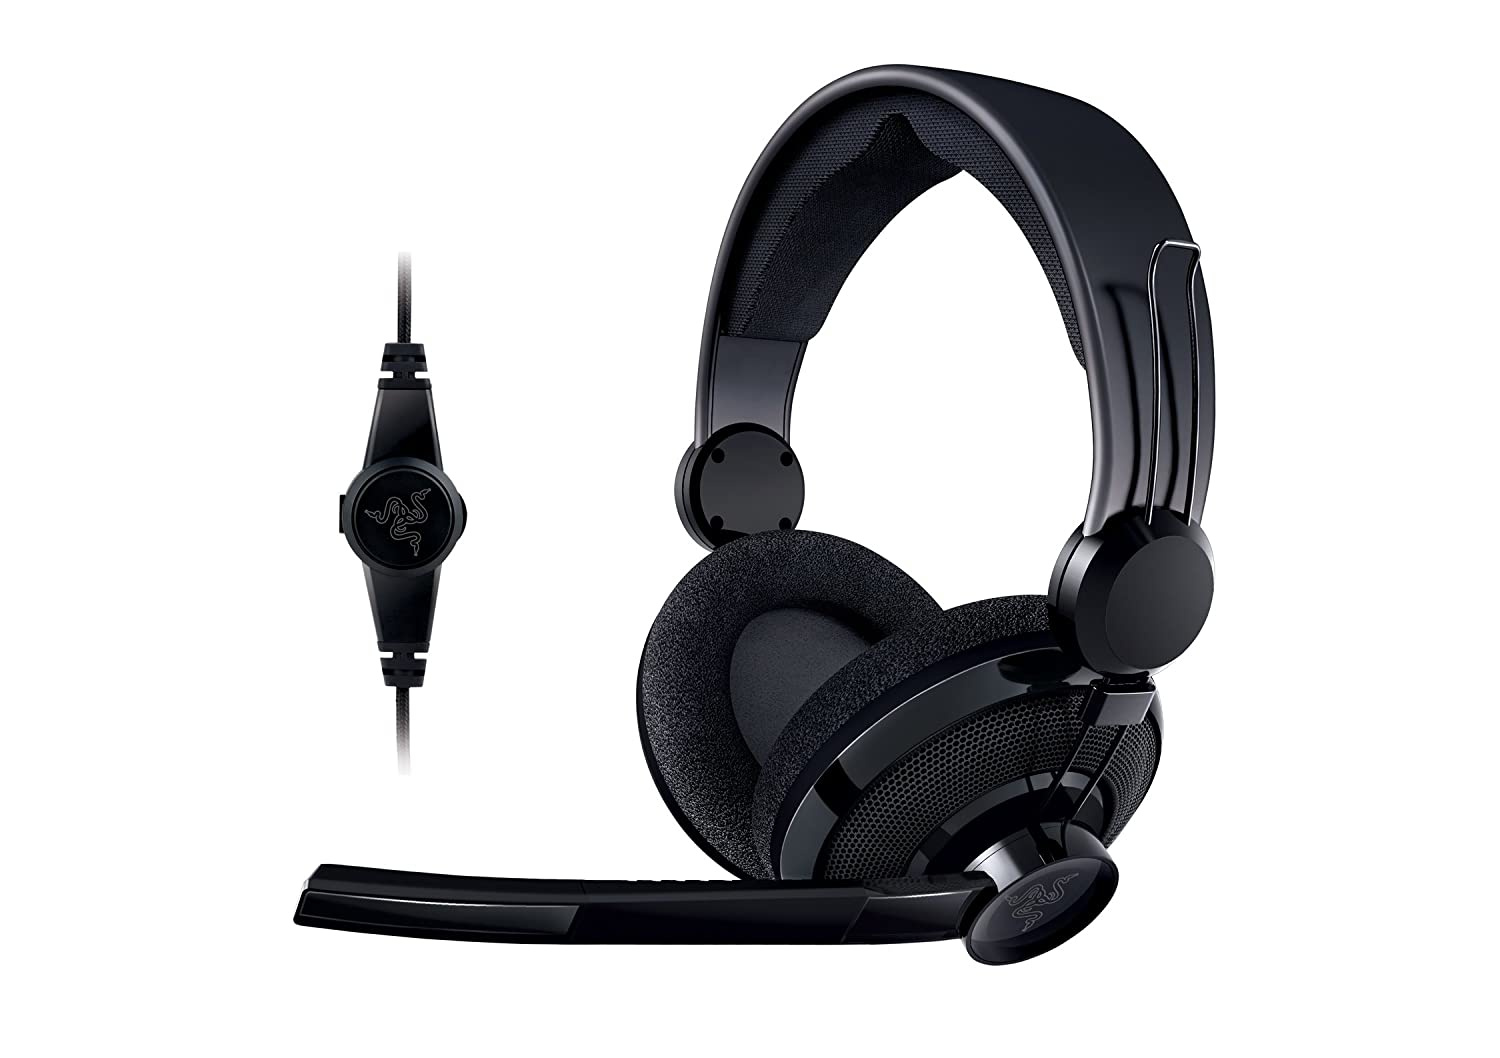 Razer Carcharias Gaming Headset (Black) $47.99